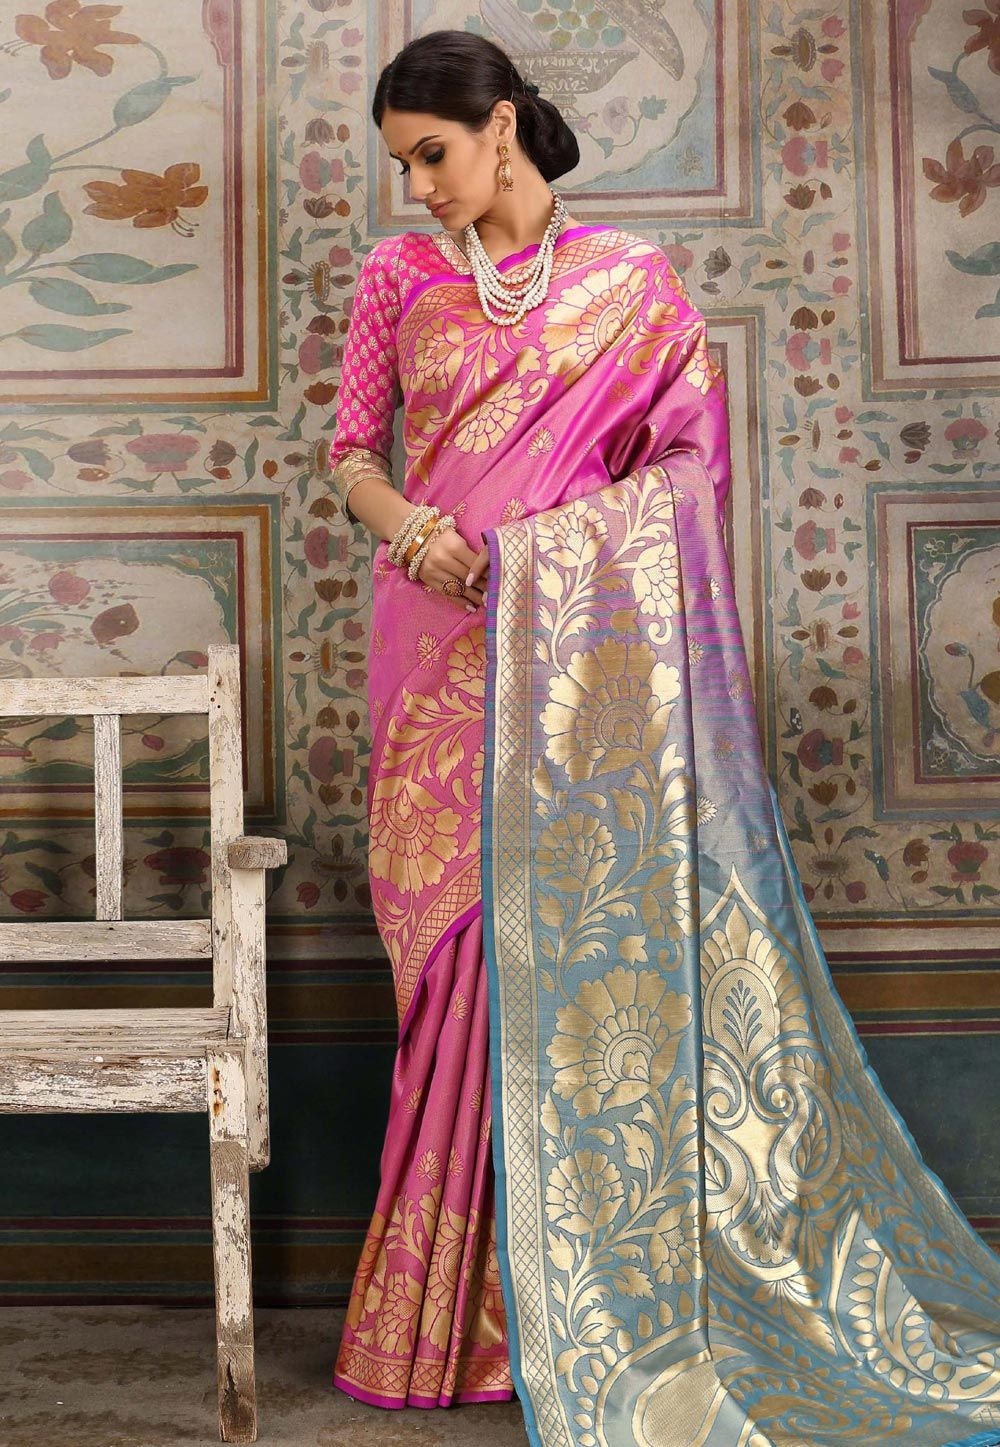 06acca7baa Buy Pink Kanjivaram Silk Saree With Blouse 168353 with blouse online at  lowest price from vast collection of sarees at Indianclothstore.com.